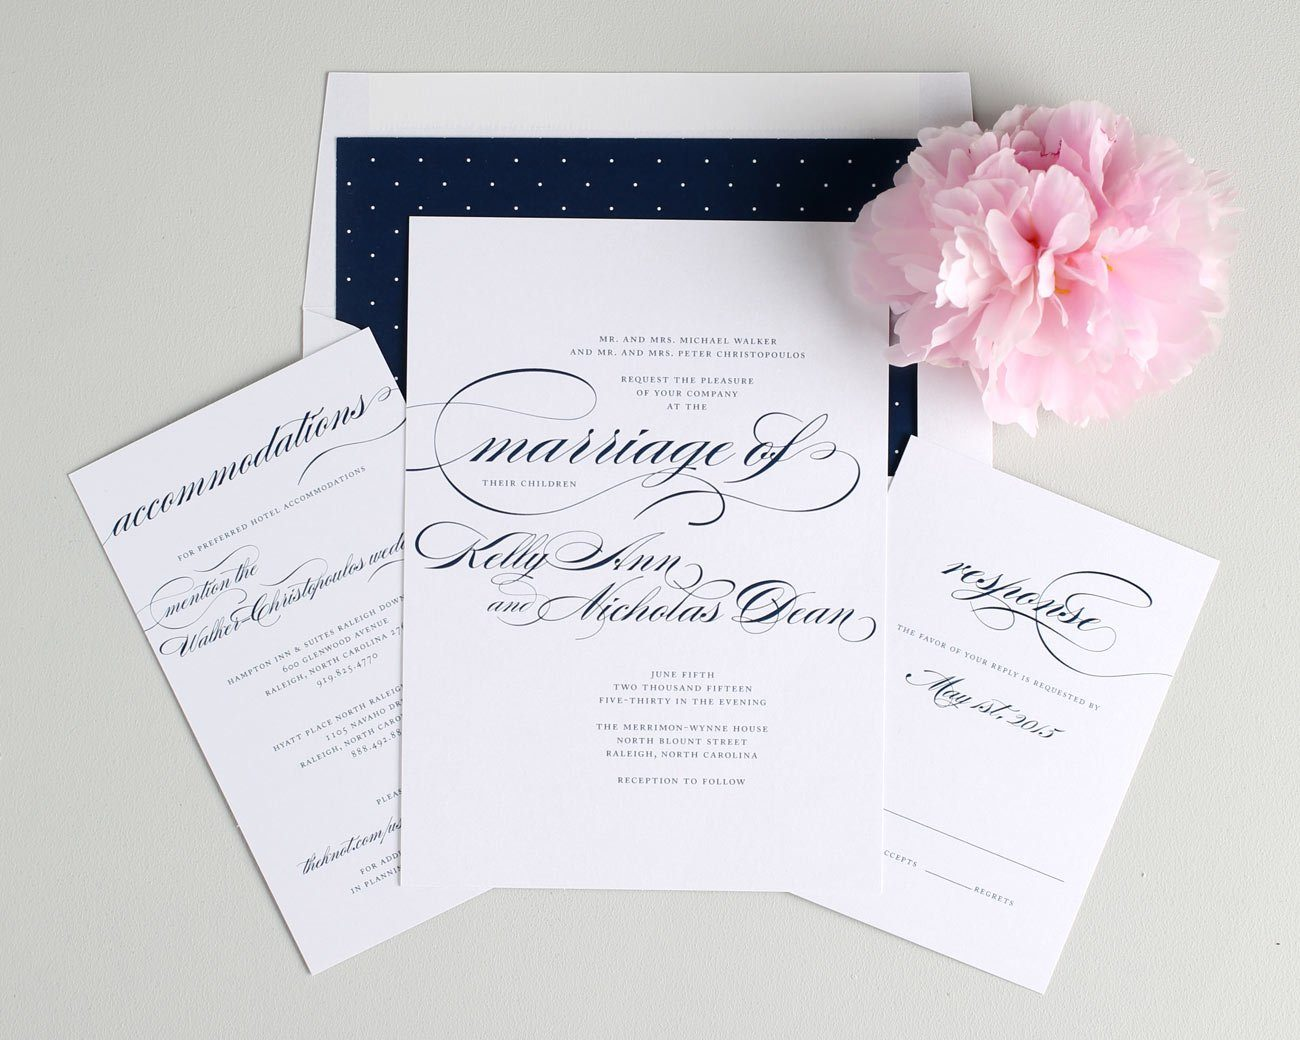 Script wedding invitations with polka dot accents